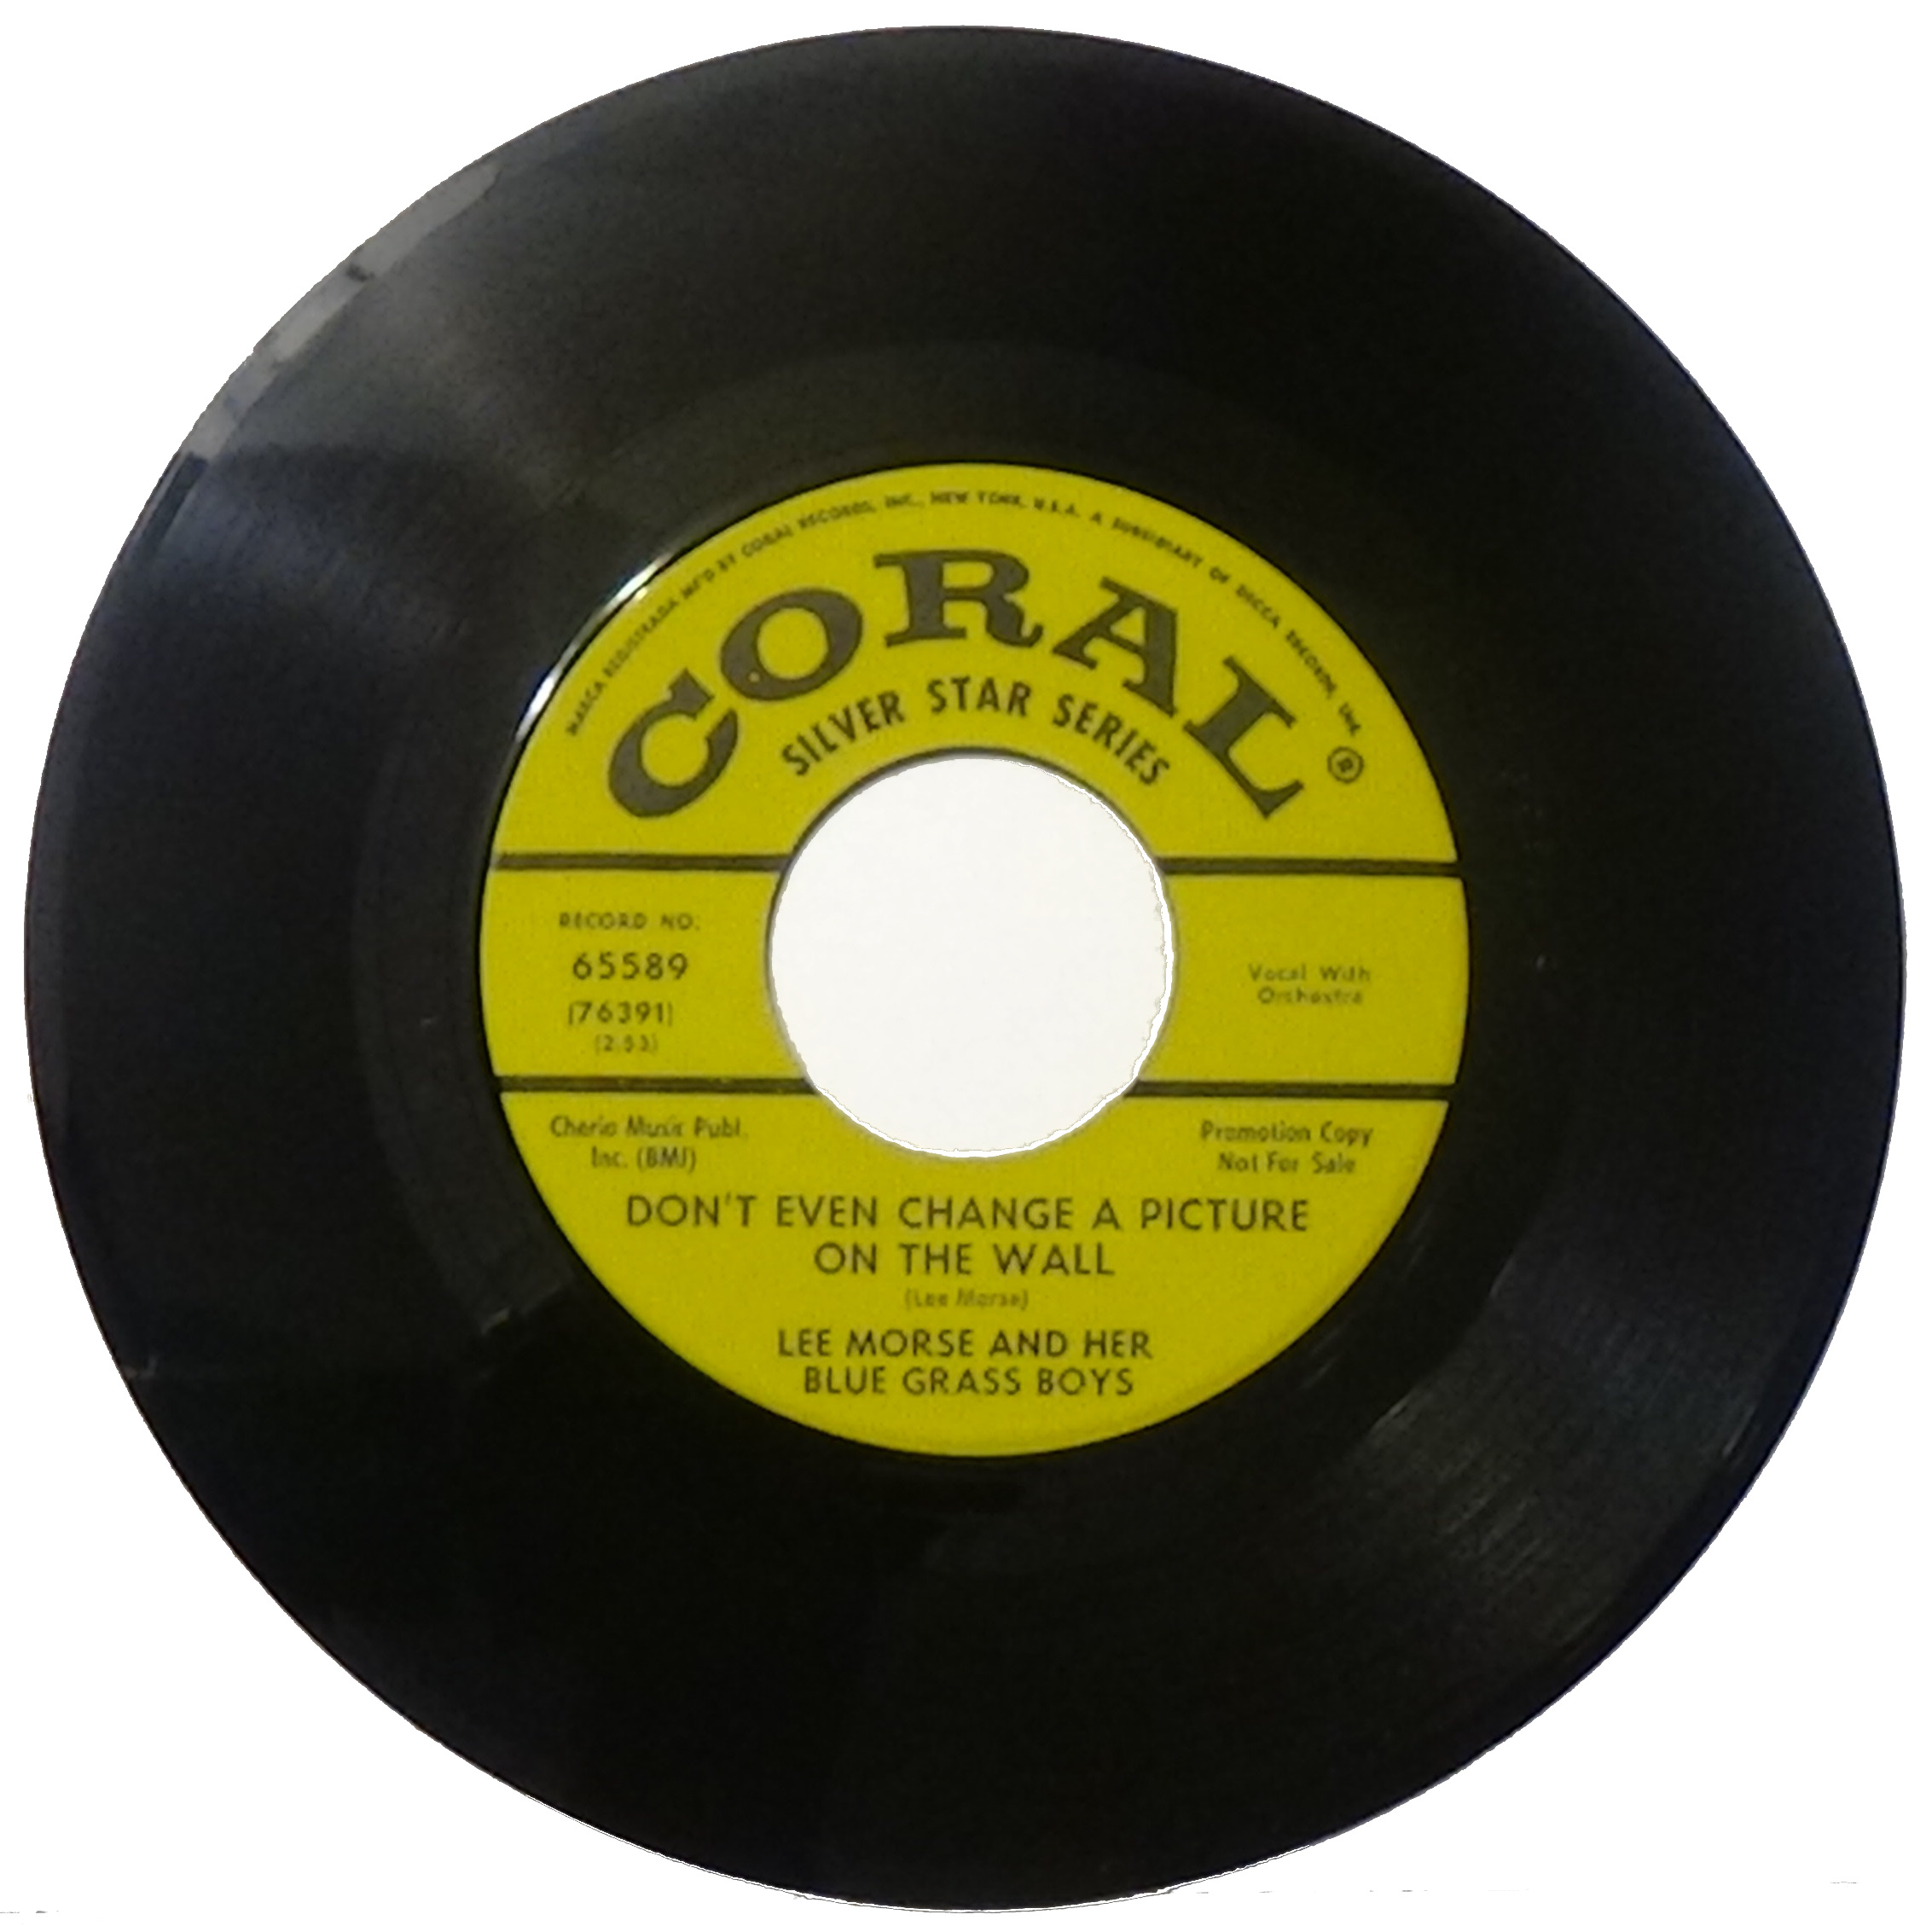 Typical 45-rpm single record with large central hole for jukeboxes and other players with a 1 /2-inch hub 45rpm.jpg